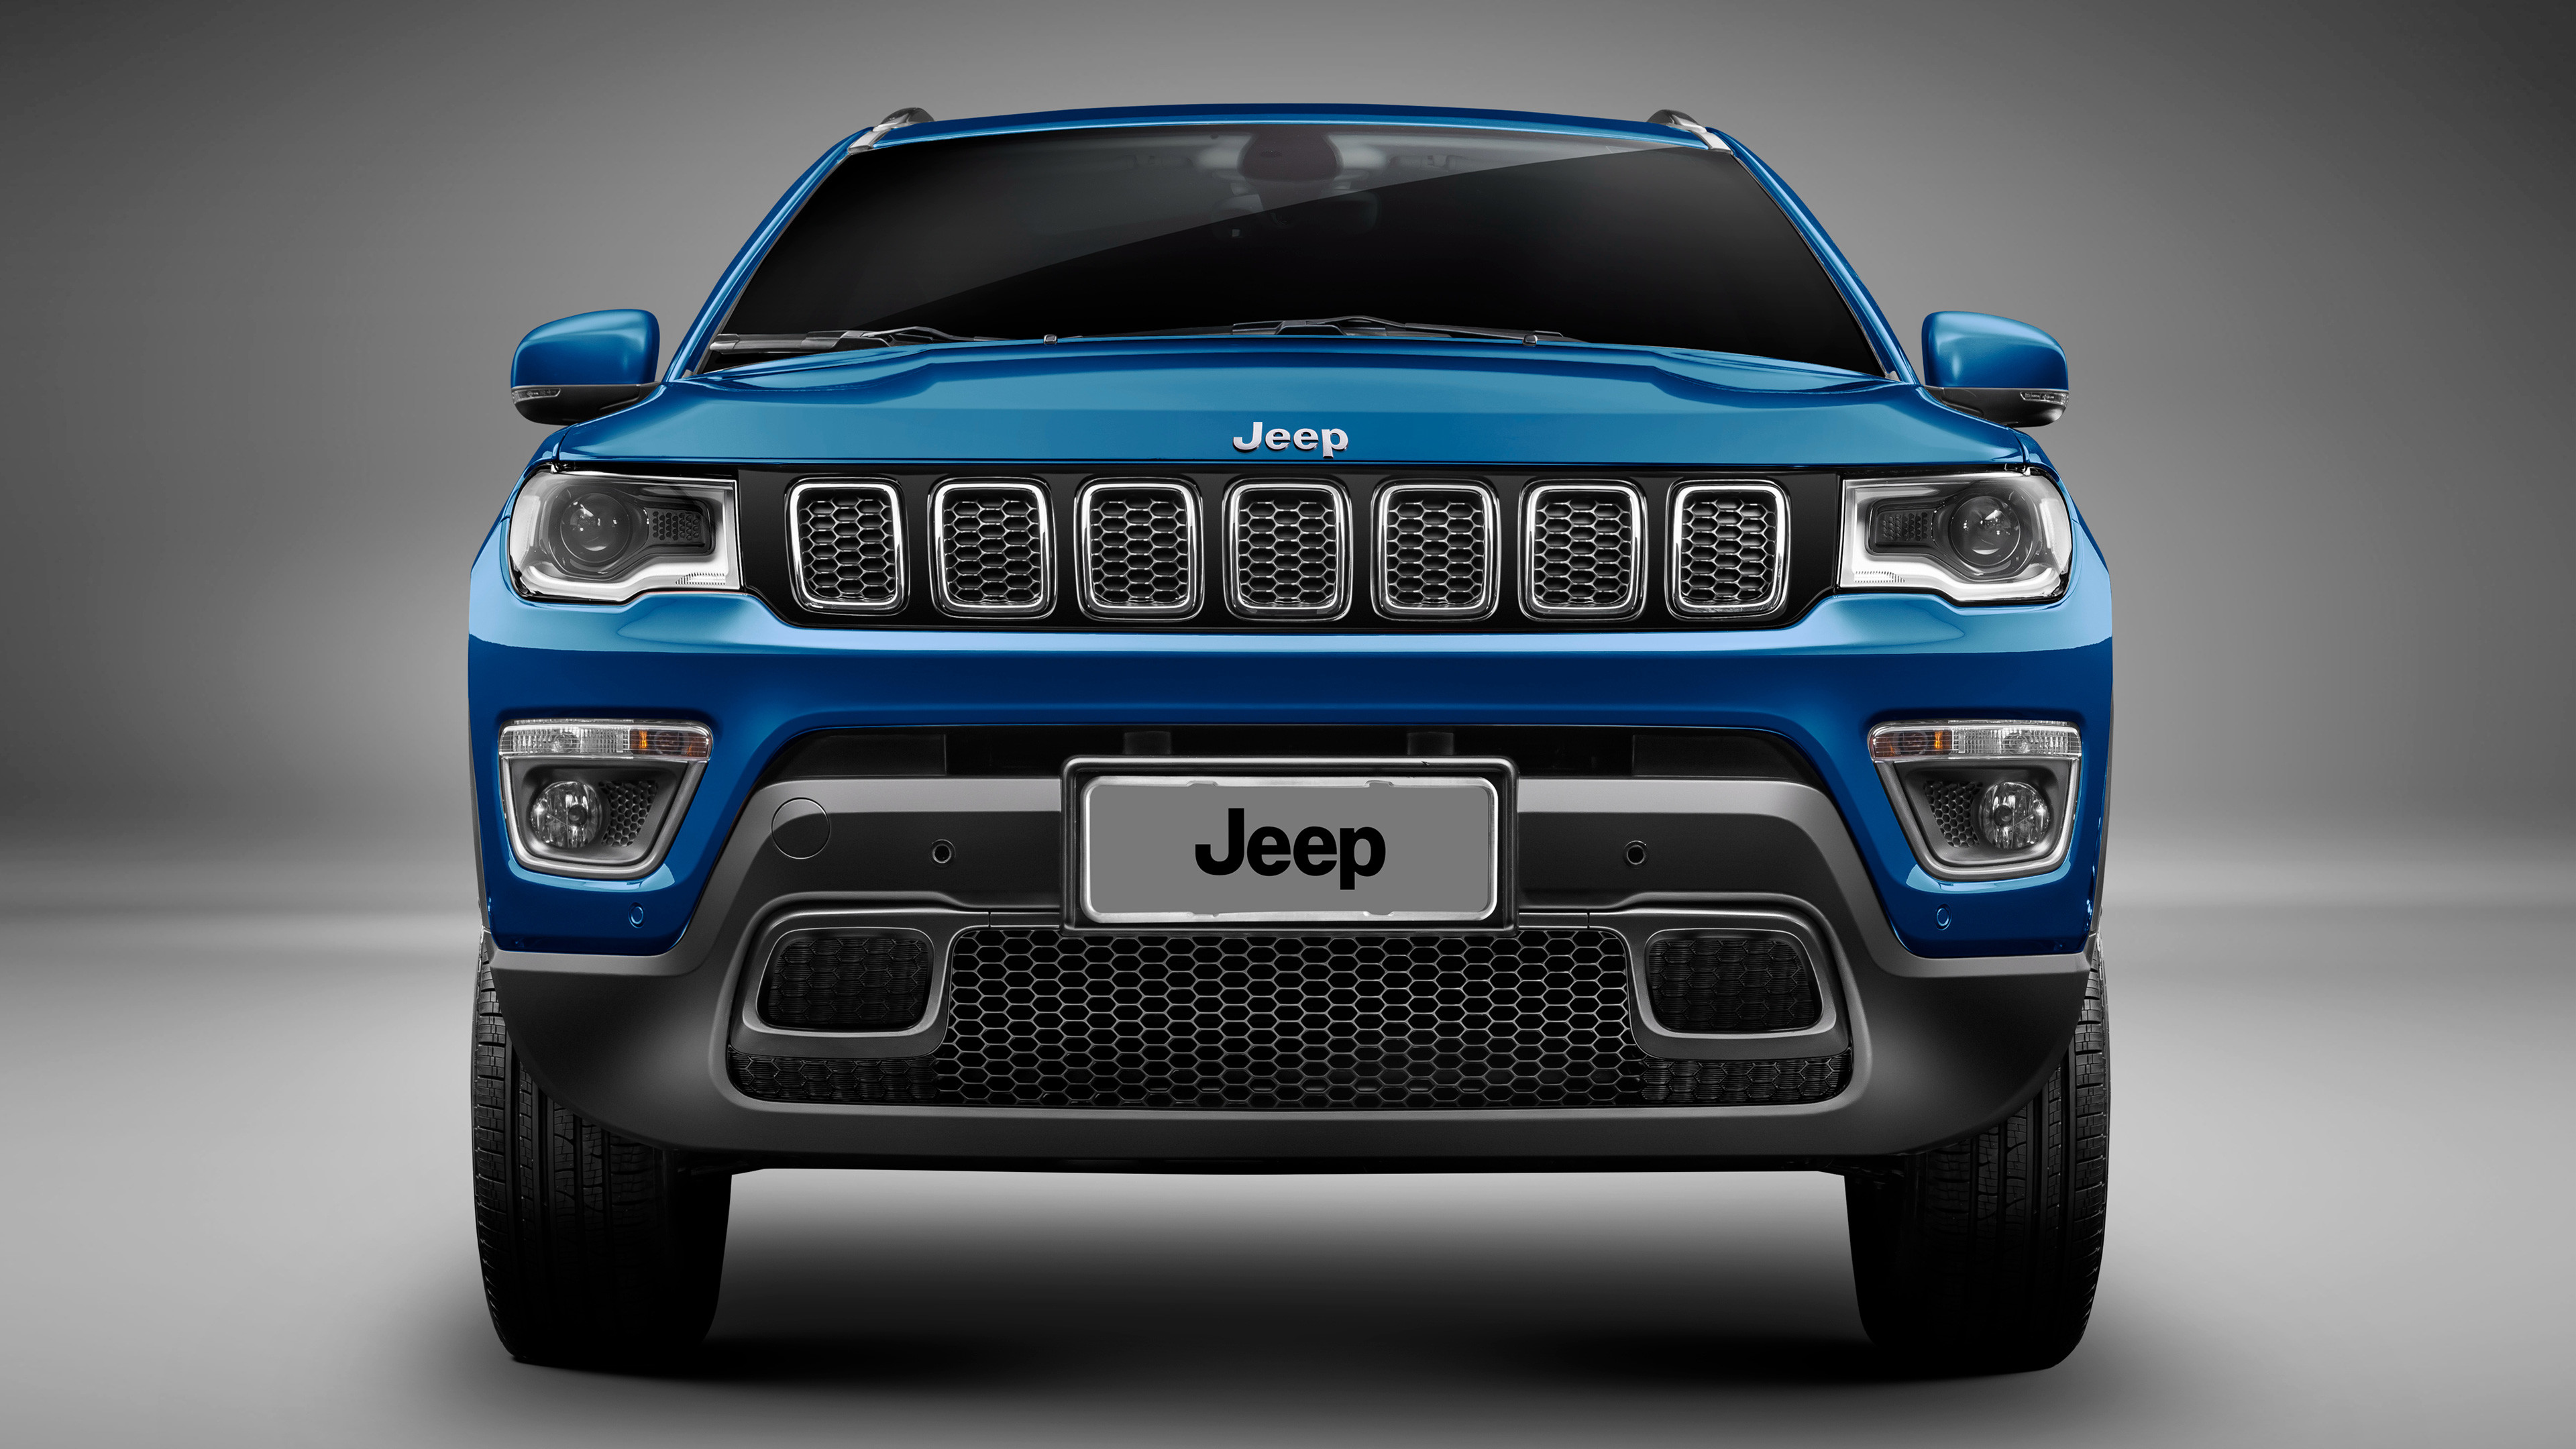 Res: 3840x2160, Tags: Compass Jeep ...